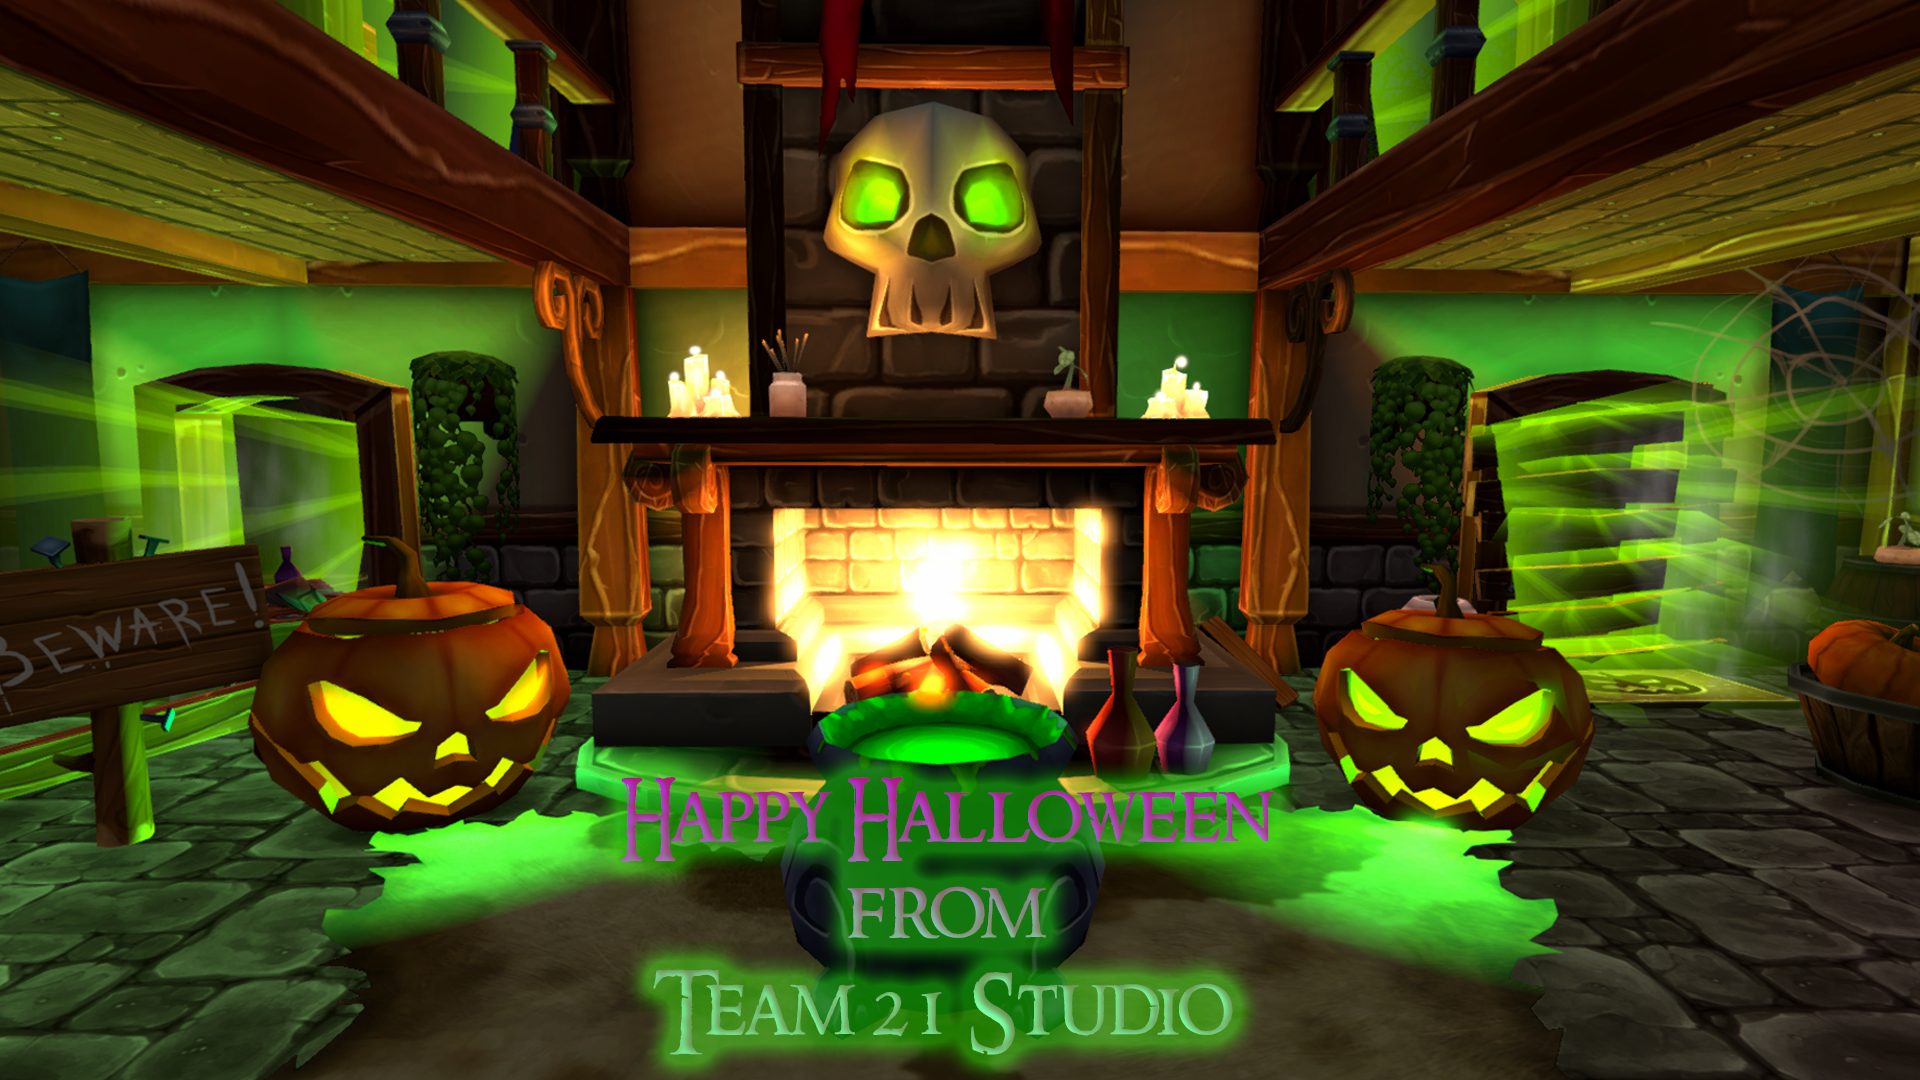 Happy Halloween from Team 21 Studio! Thank you to everyone